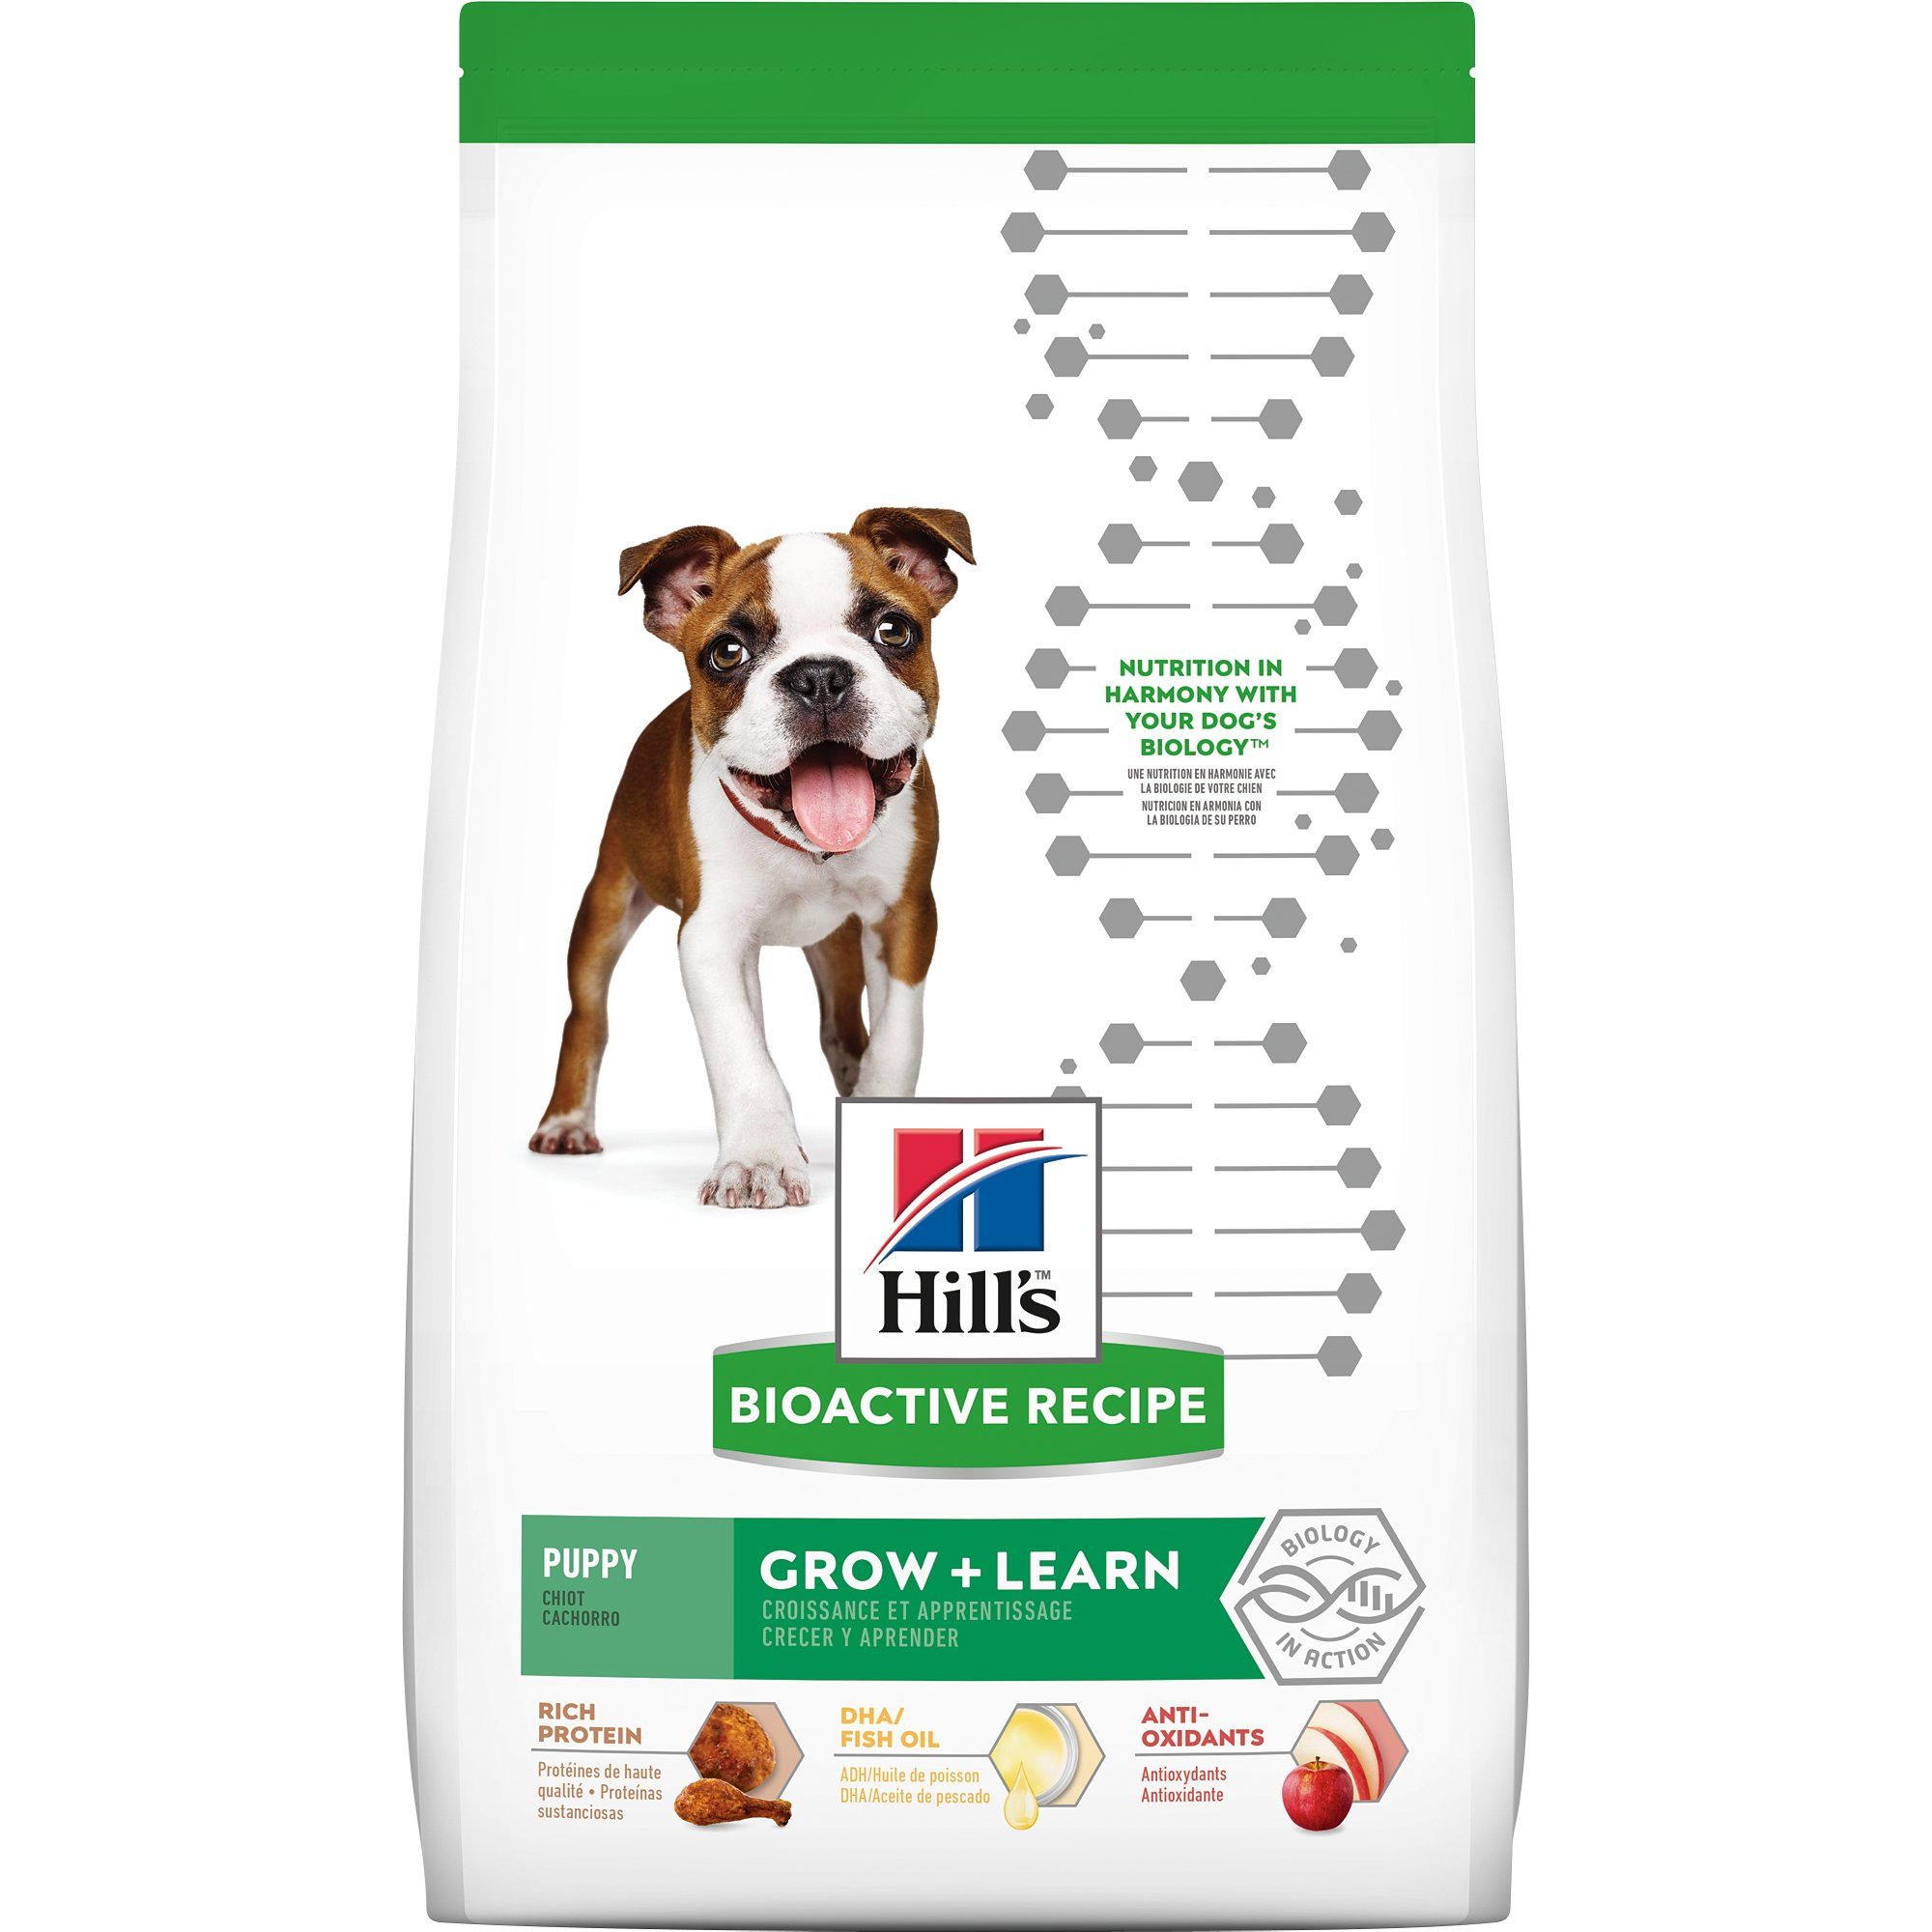 Hill's Bioactive Recipe Grow + Learn Chicken & Brown Rice Puppy Dry Food, 11 Lbs.